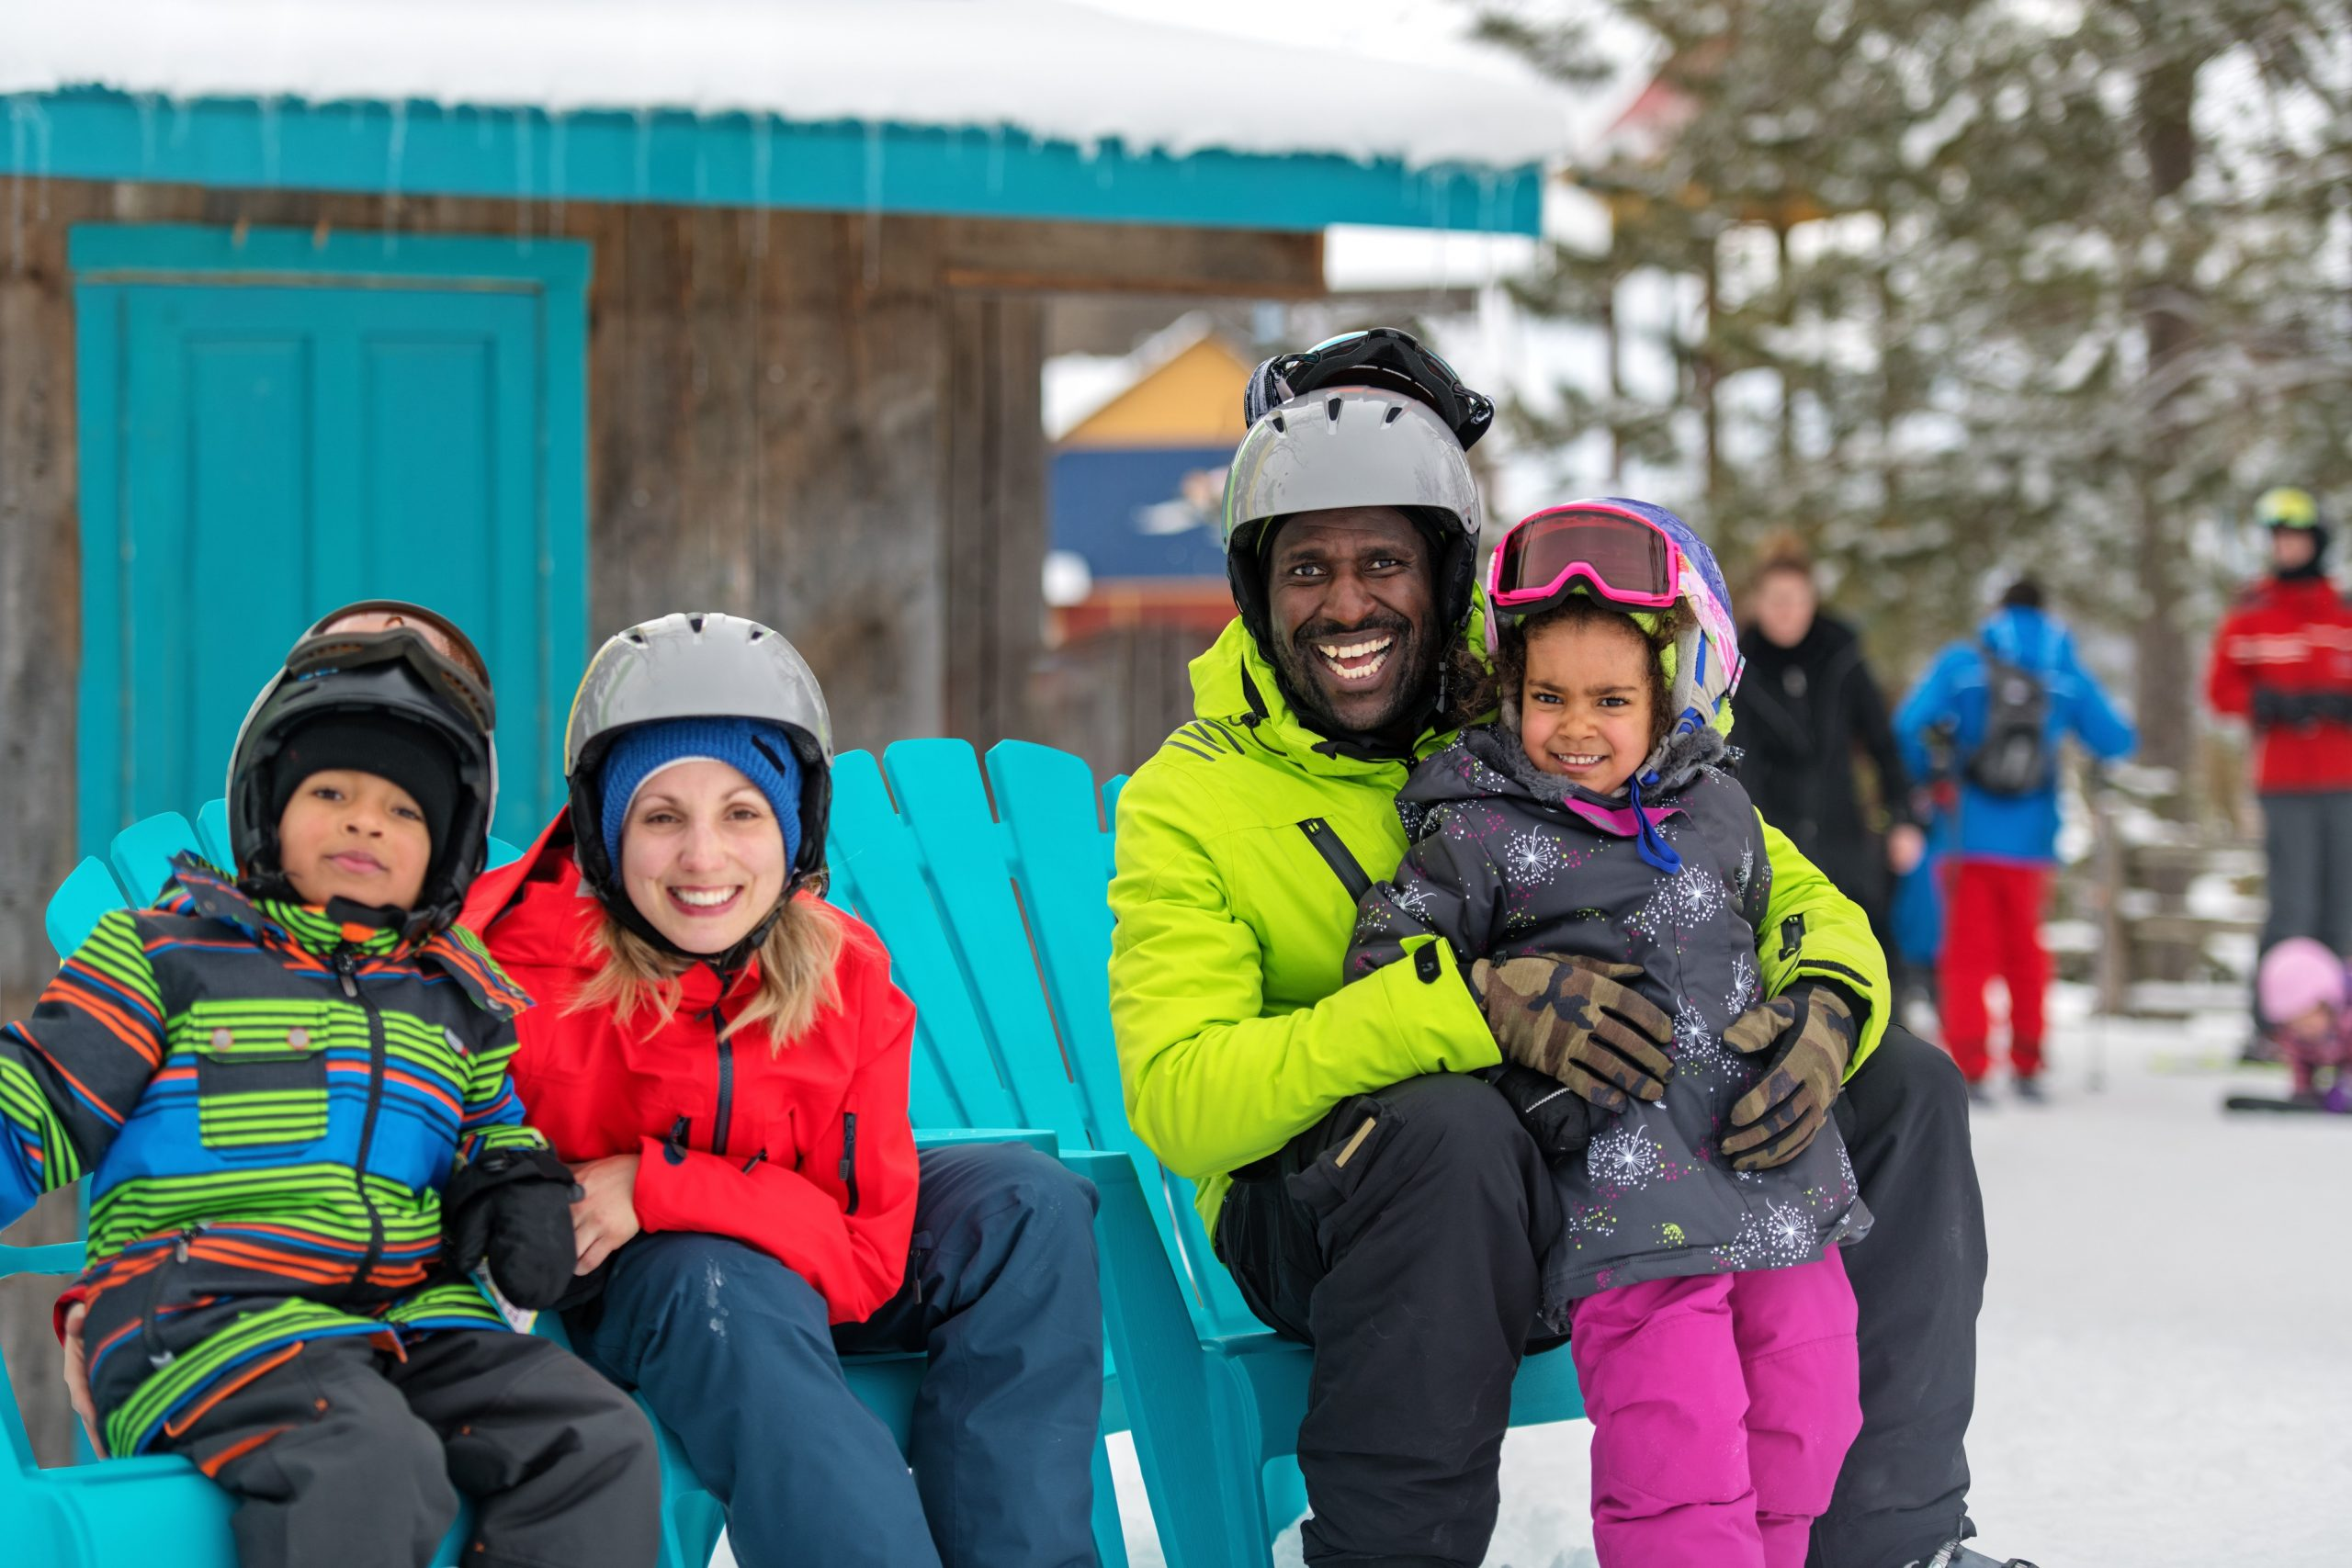 Families and friends in a ski resort